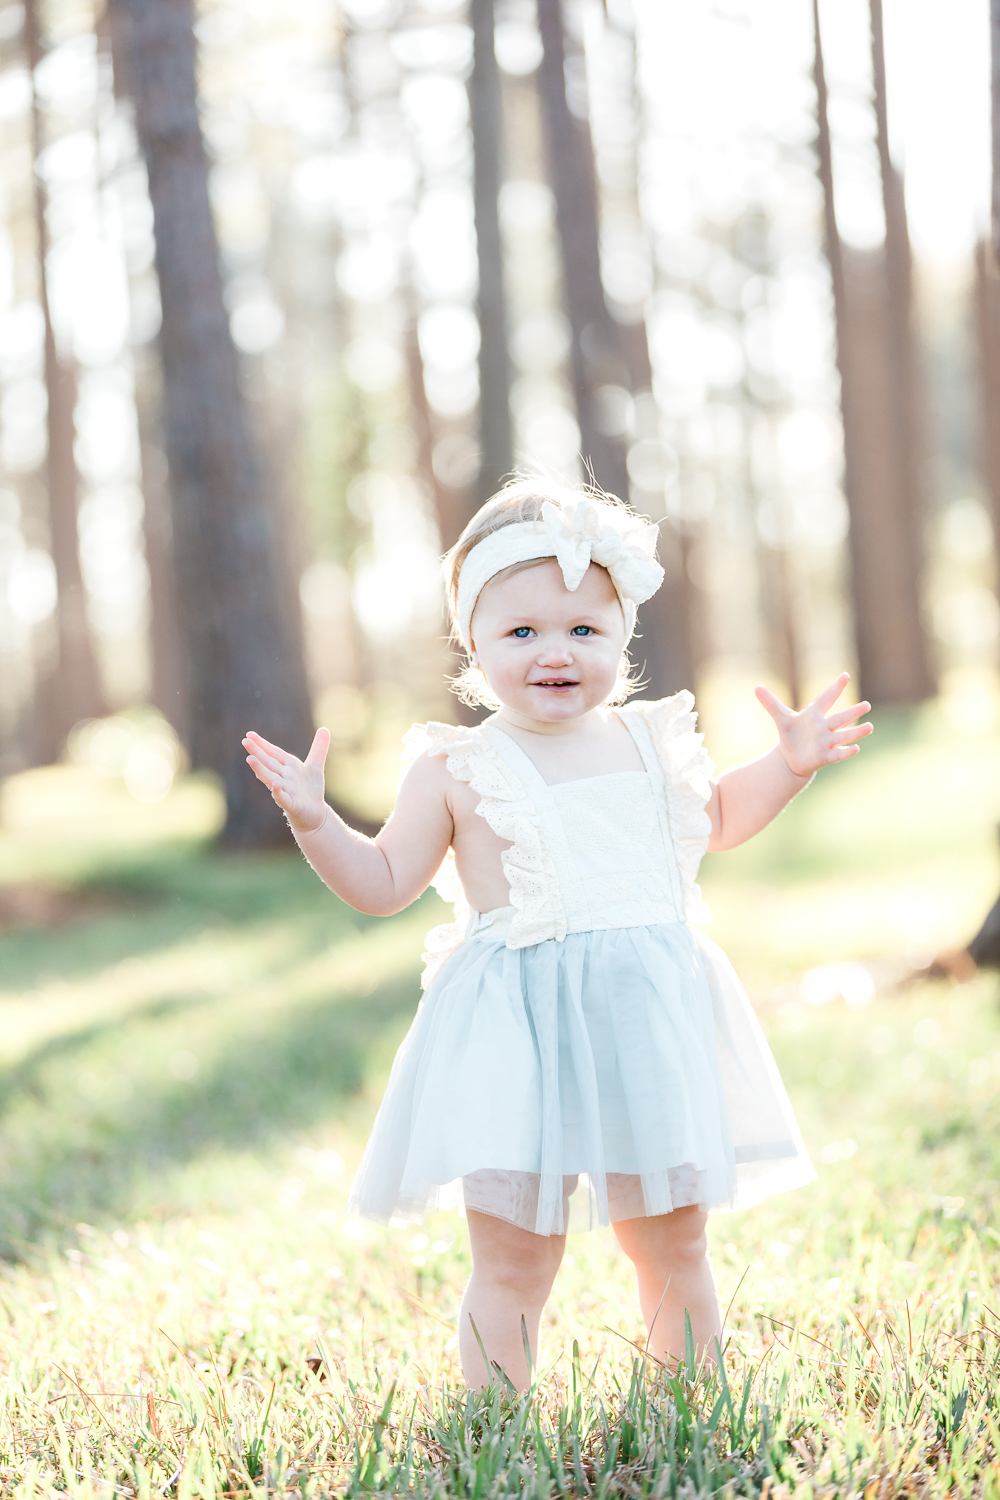 children outfit rental for photoshoots